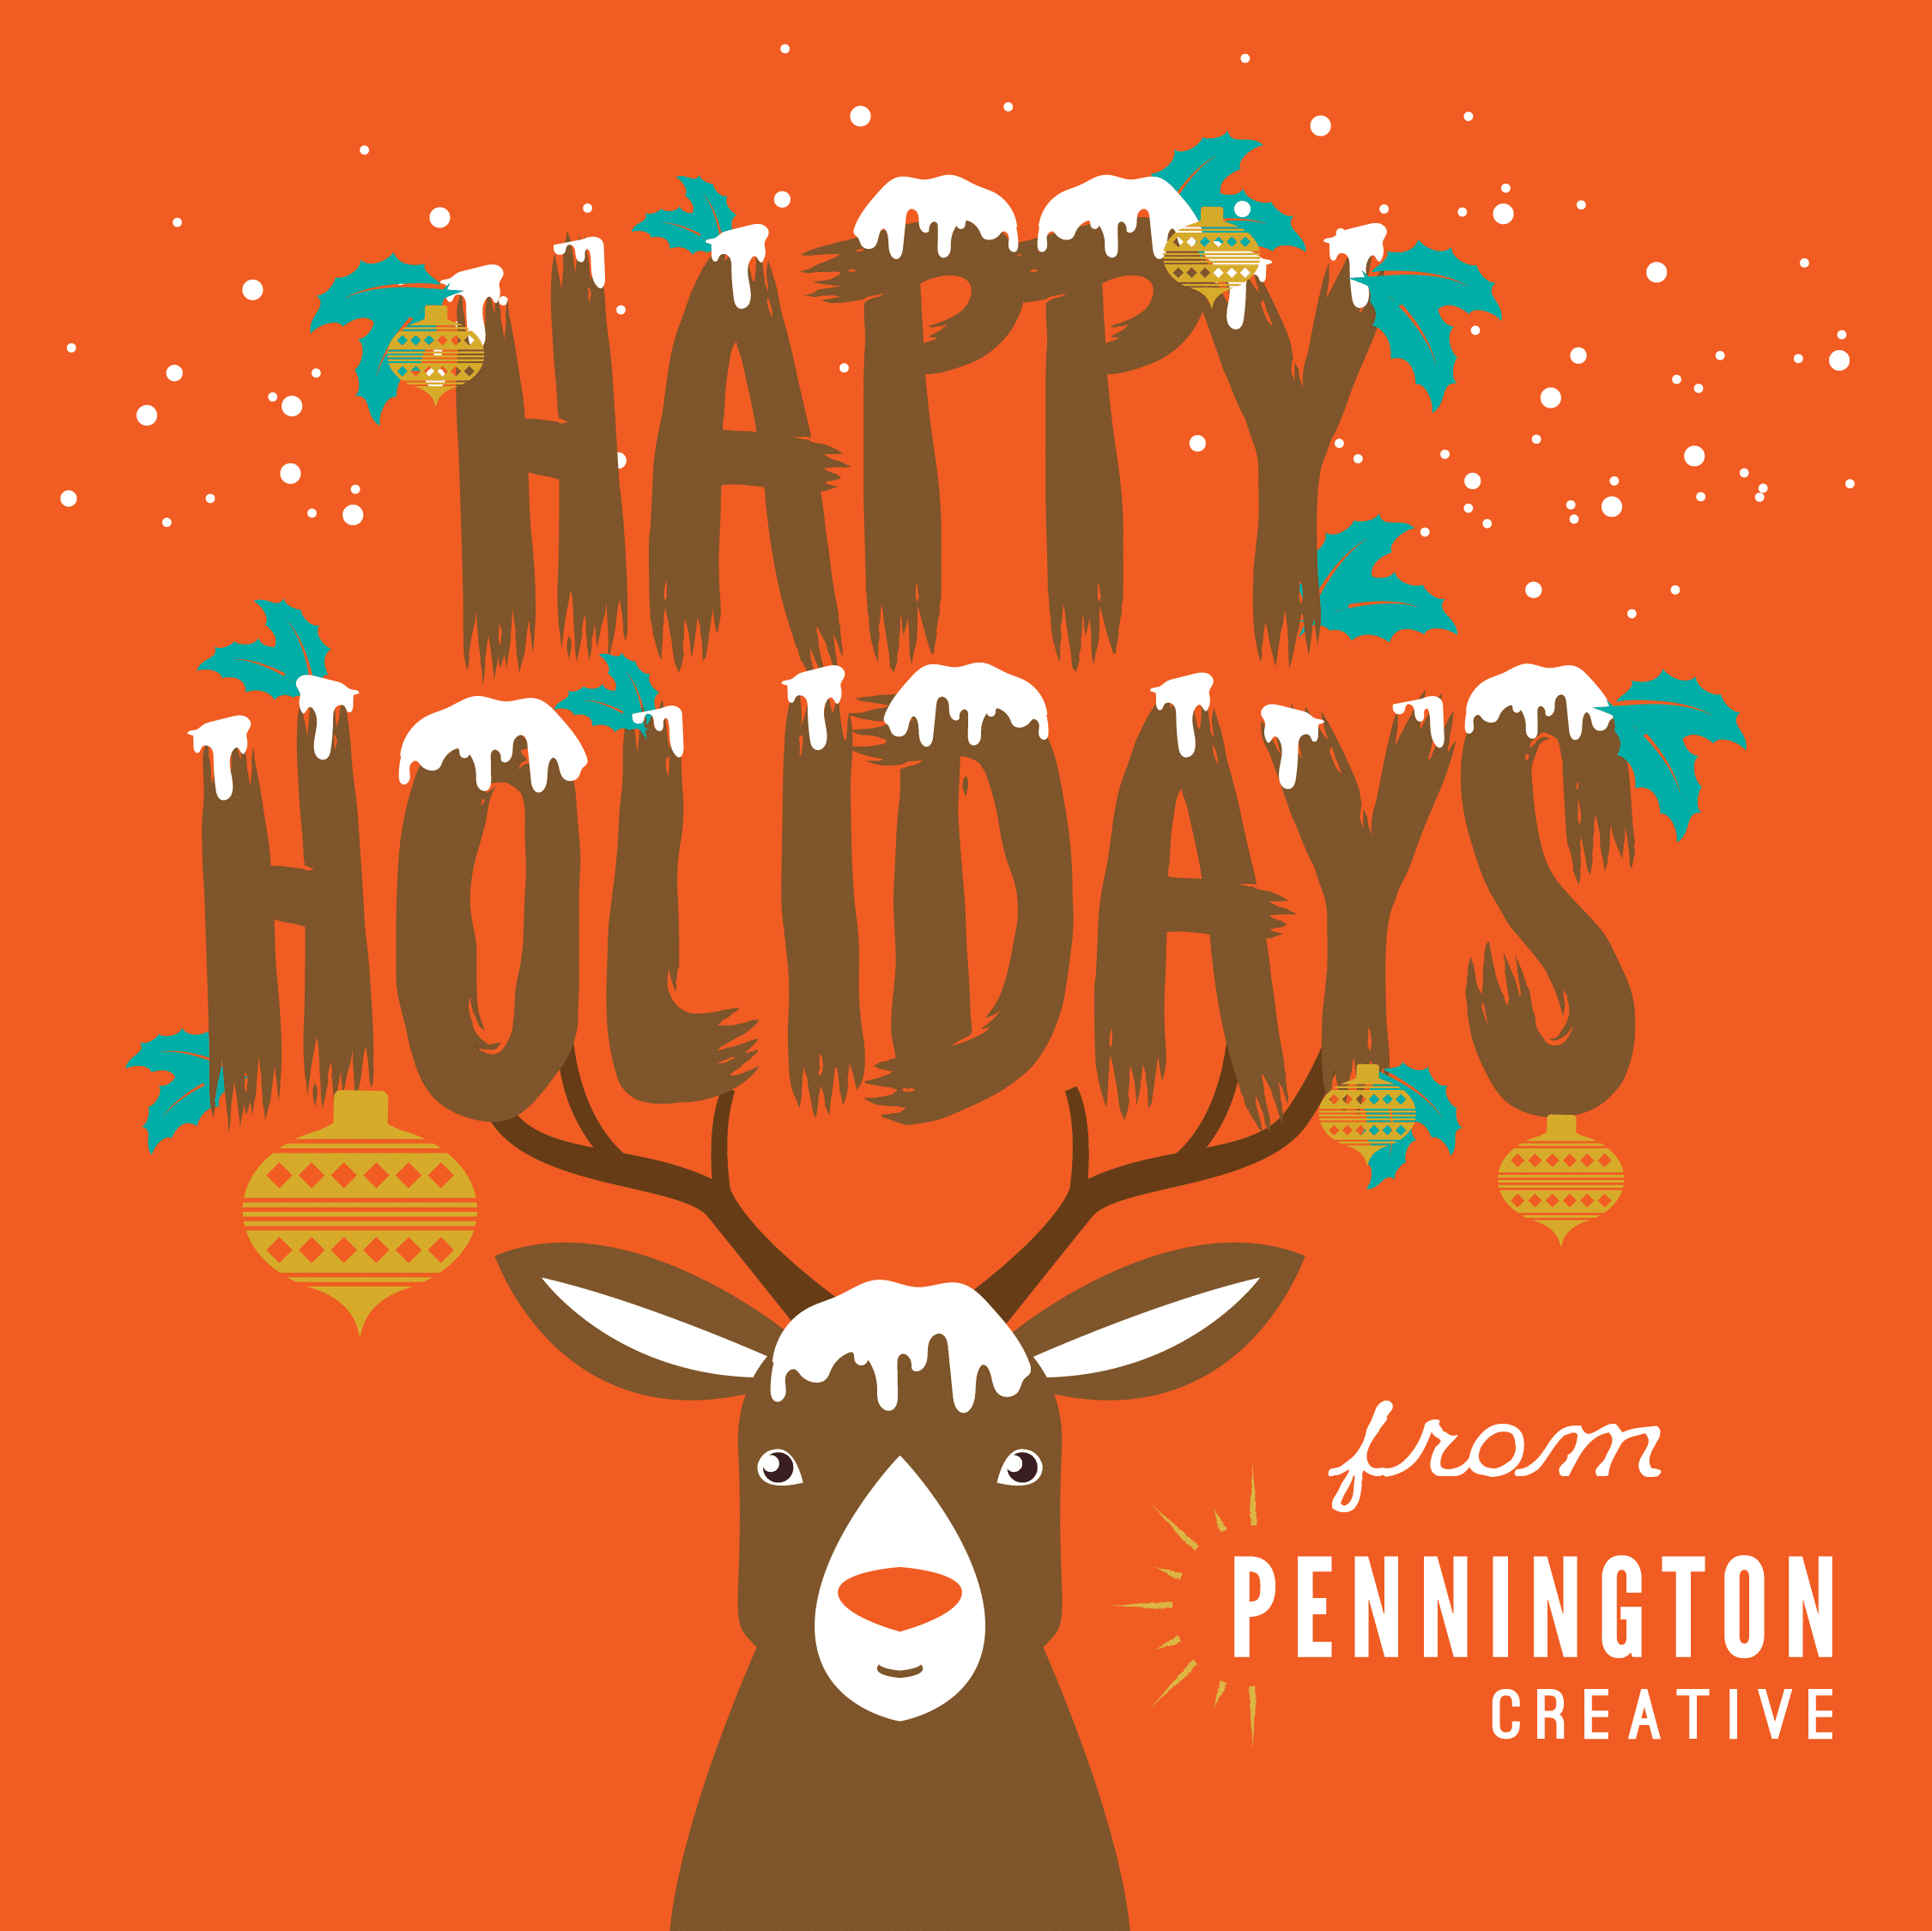 2018 Pennington Creative Holiday Card